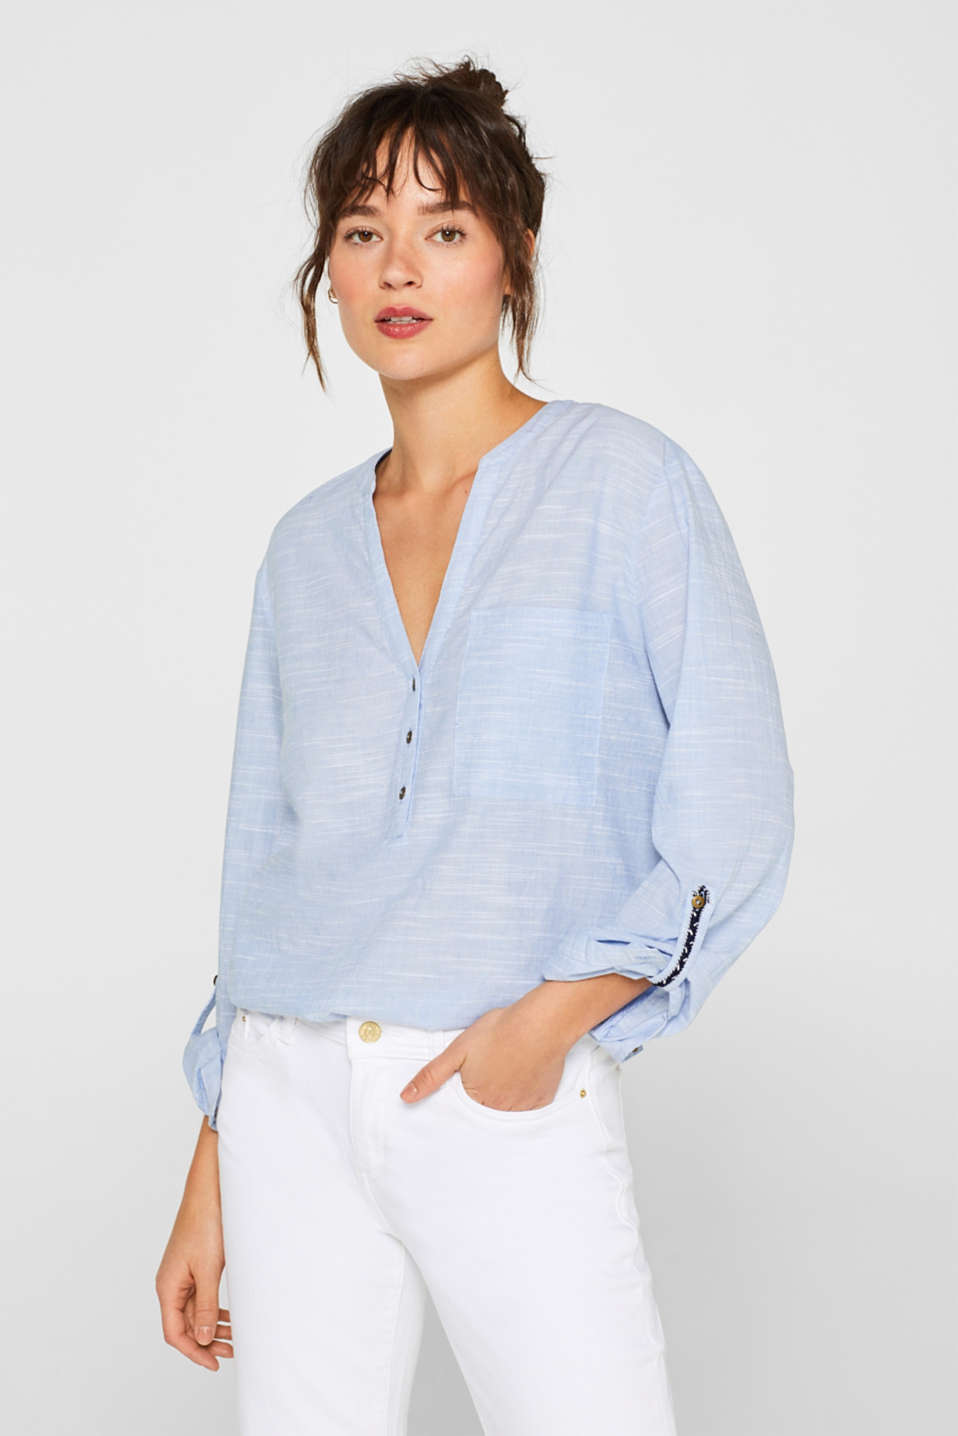 edc - Textured Henley blouse made of 100% cotton